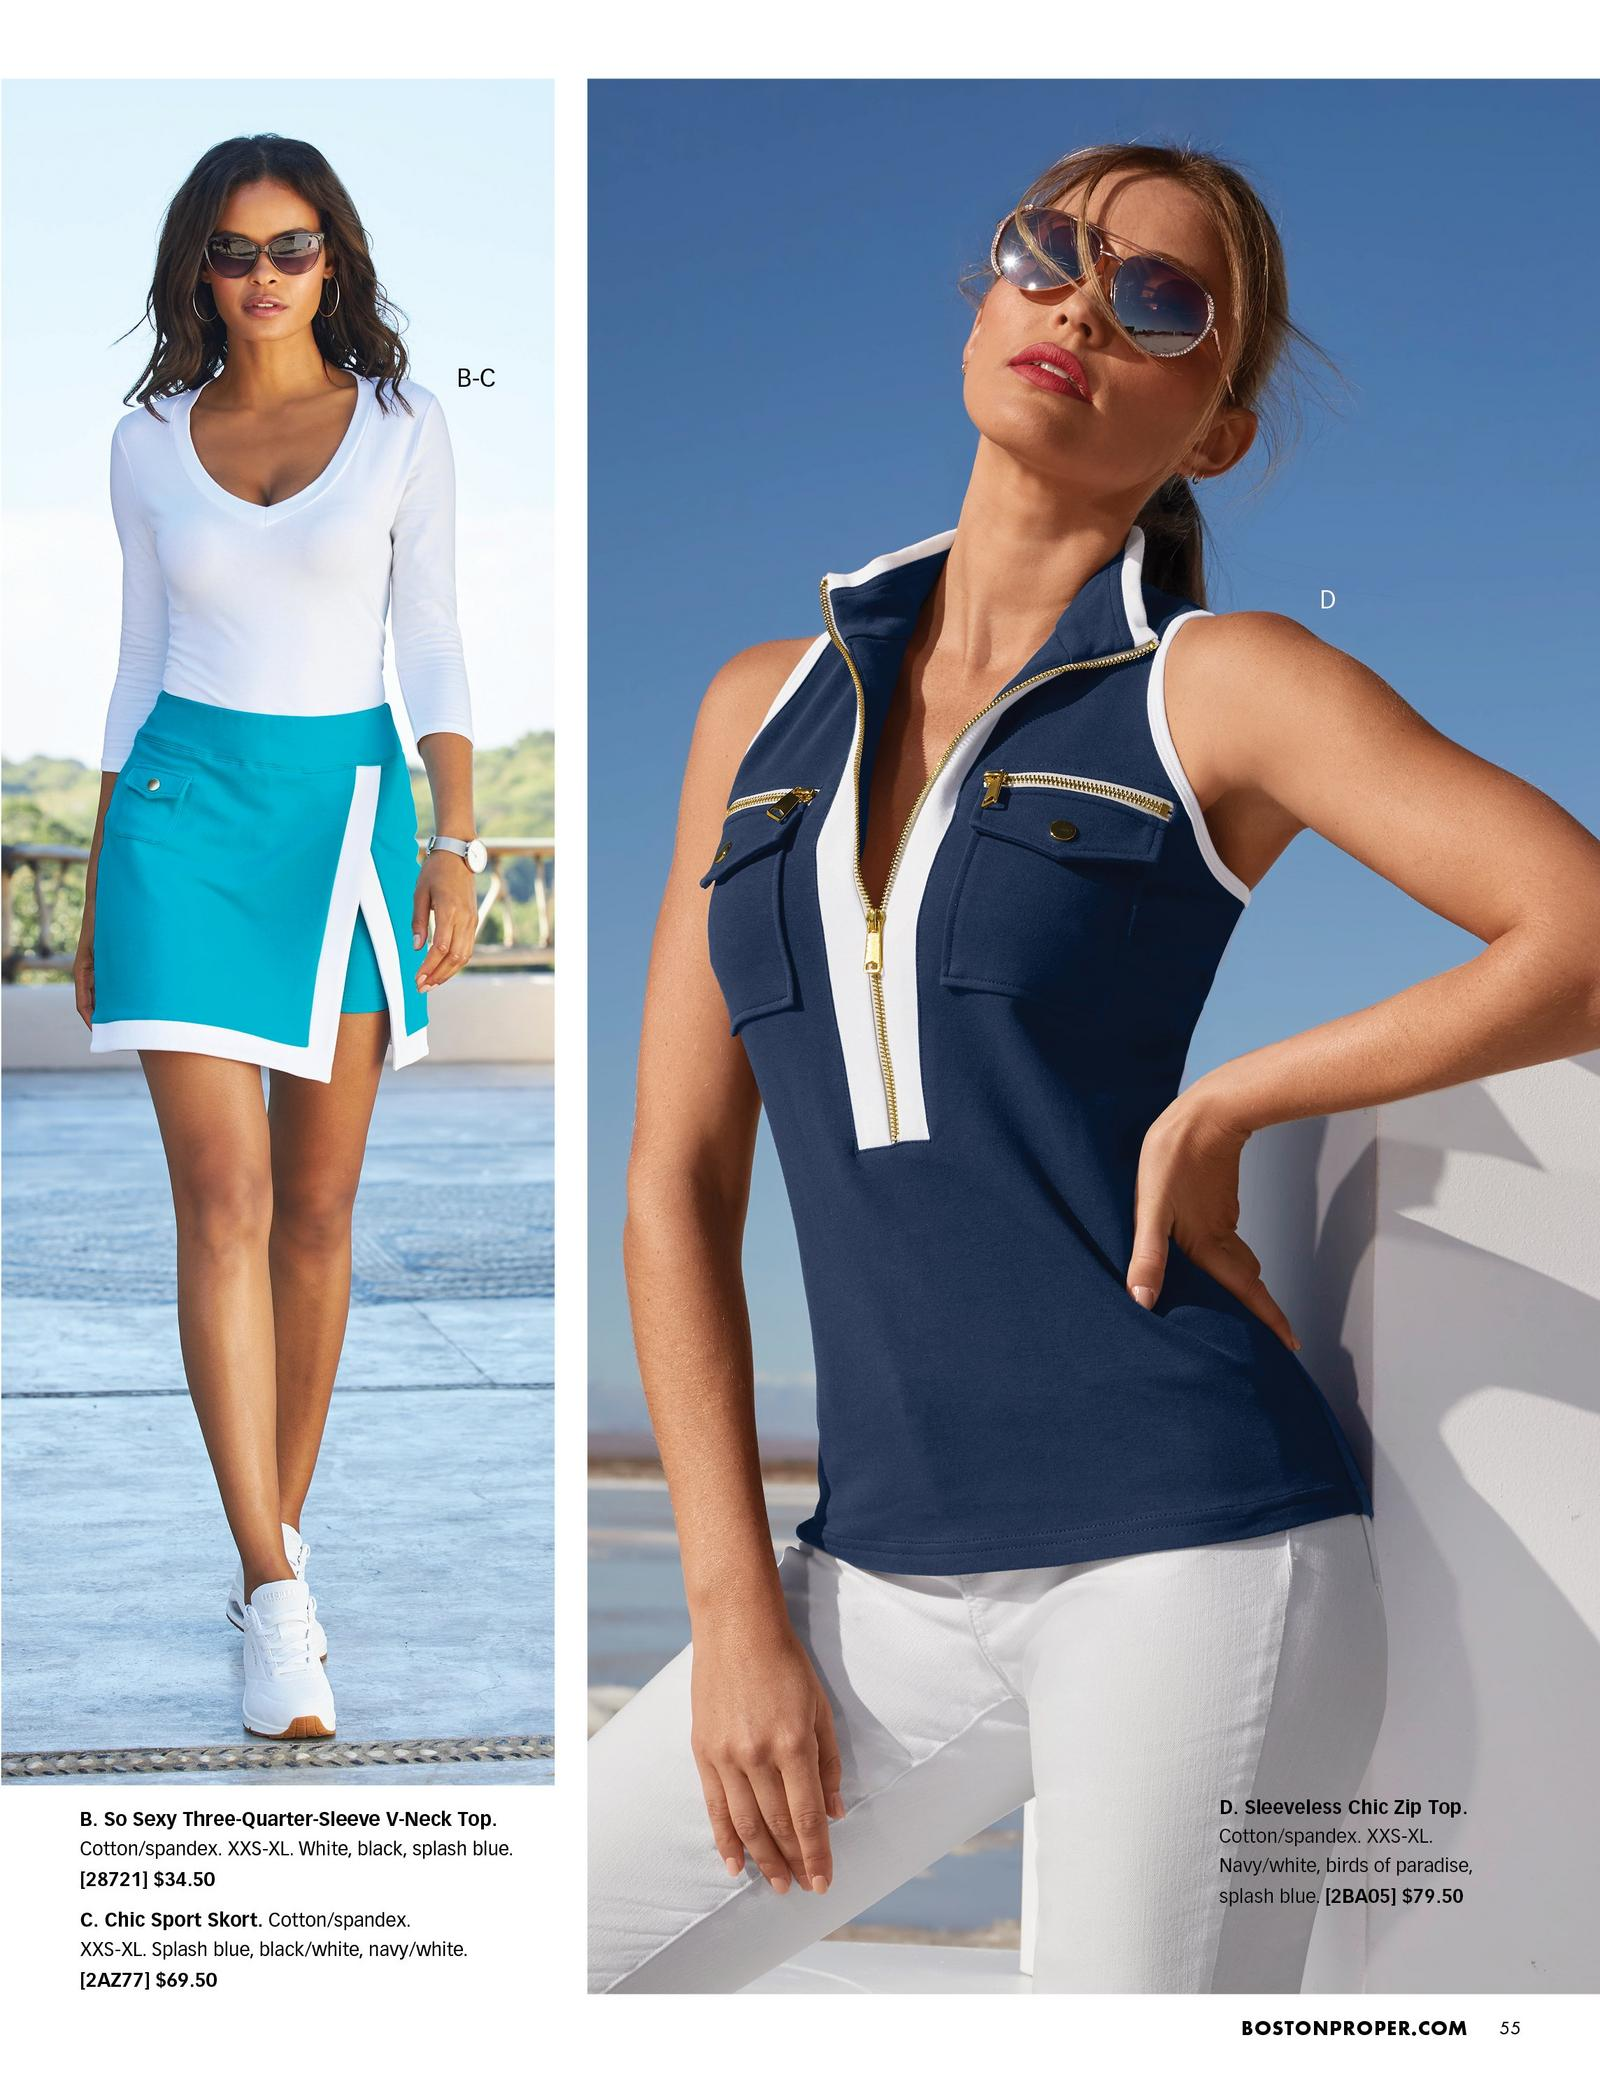 left model wearing a white three-quarter sleeve scoop-neck top, light blue and white sport skort, white sneakers, and sunglasses. right model wearing a navy sleeveless zipper sport top, white jeans, and sunglasses.